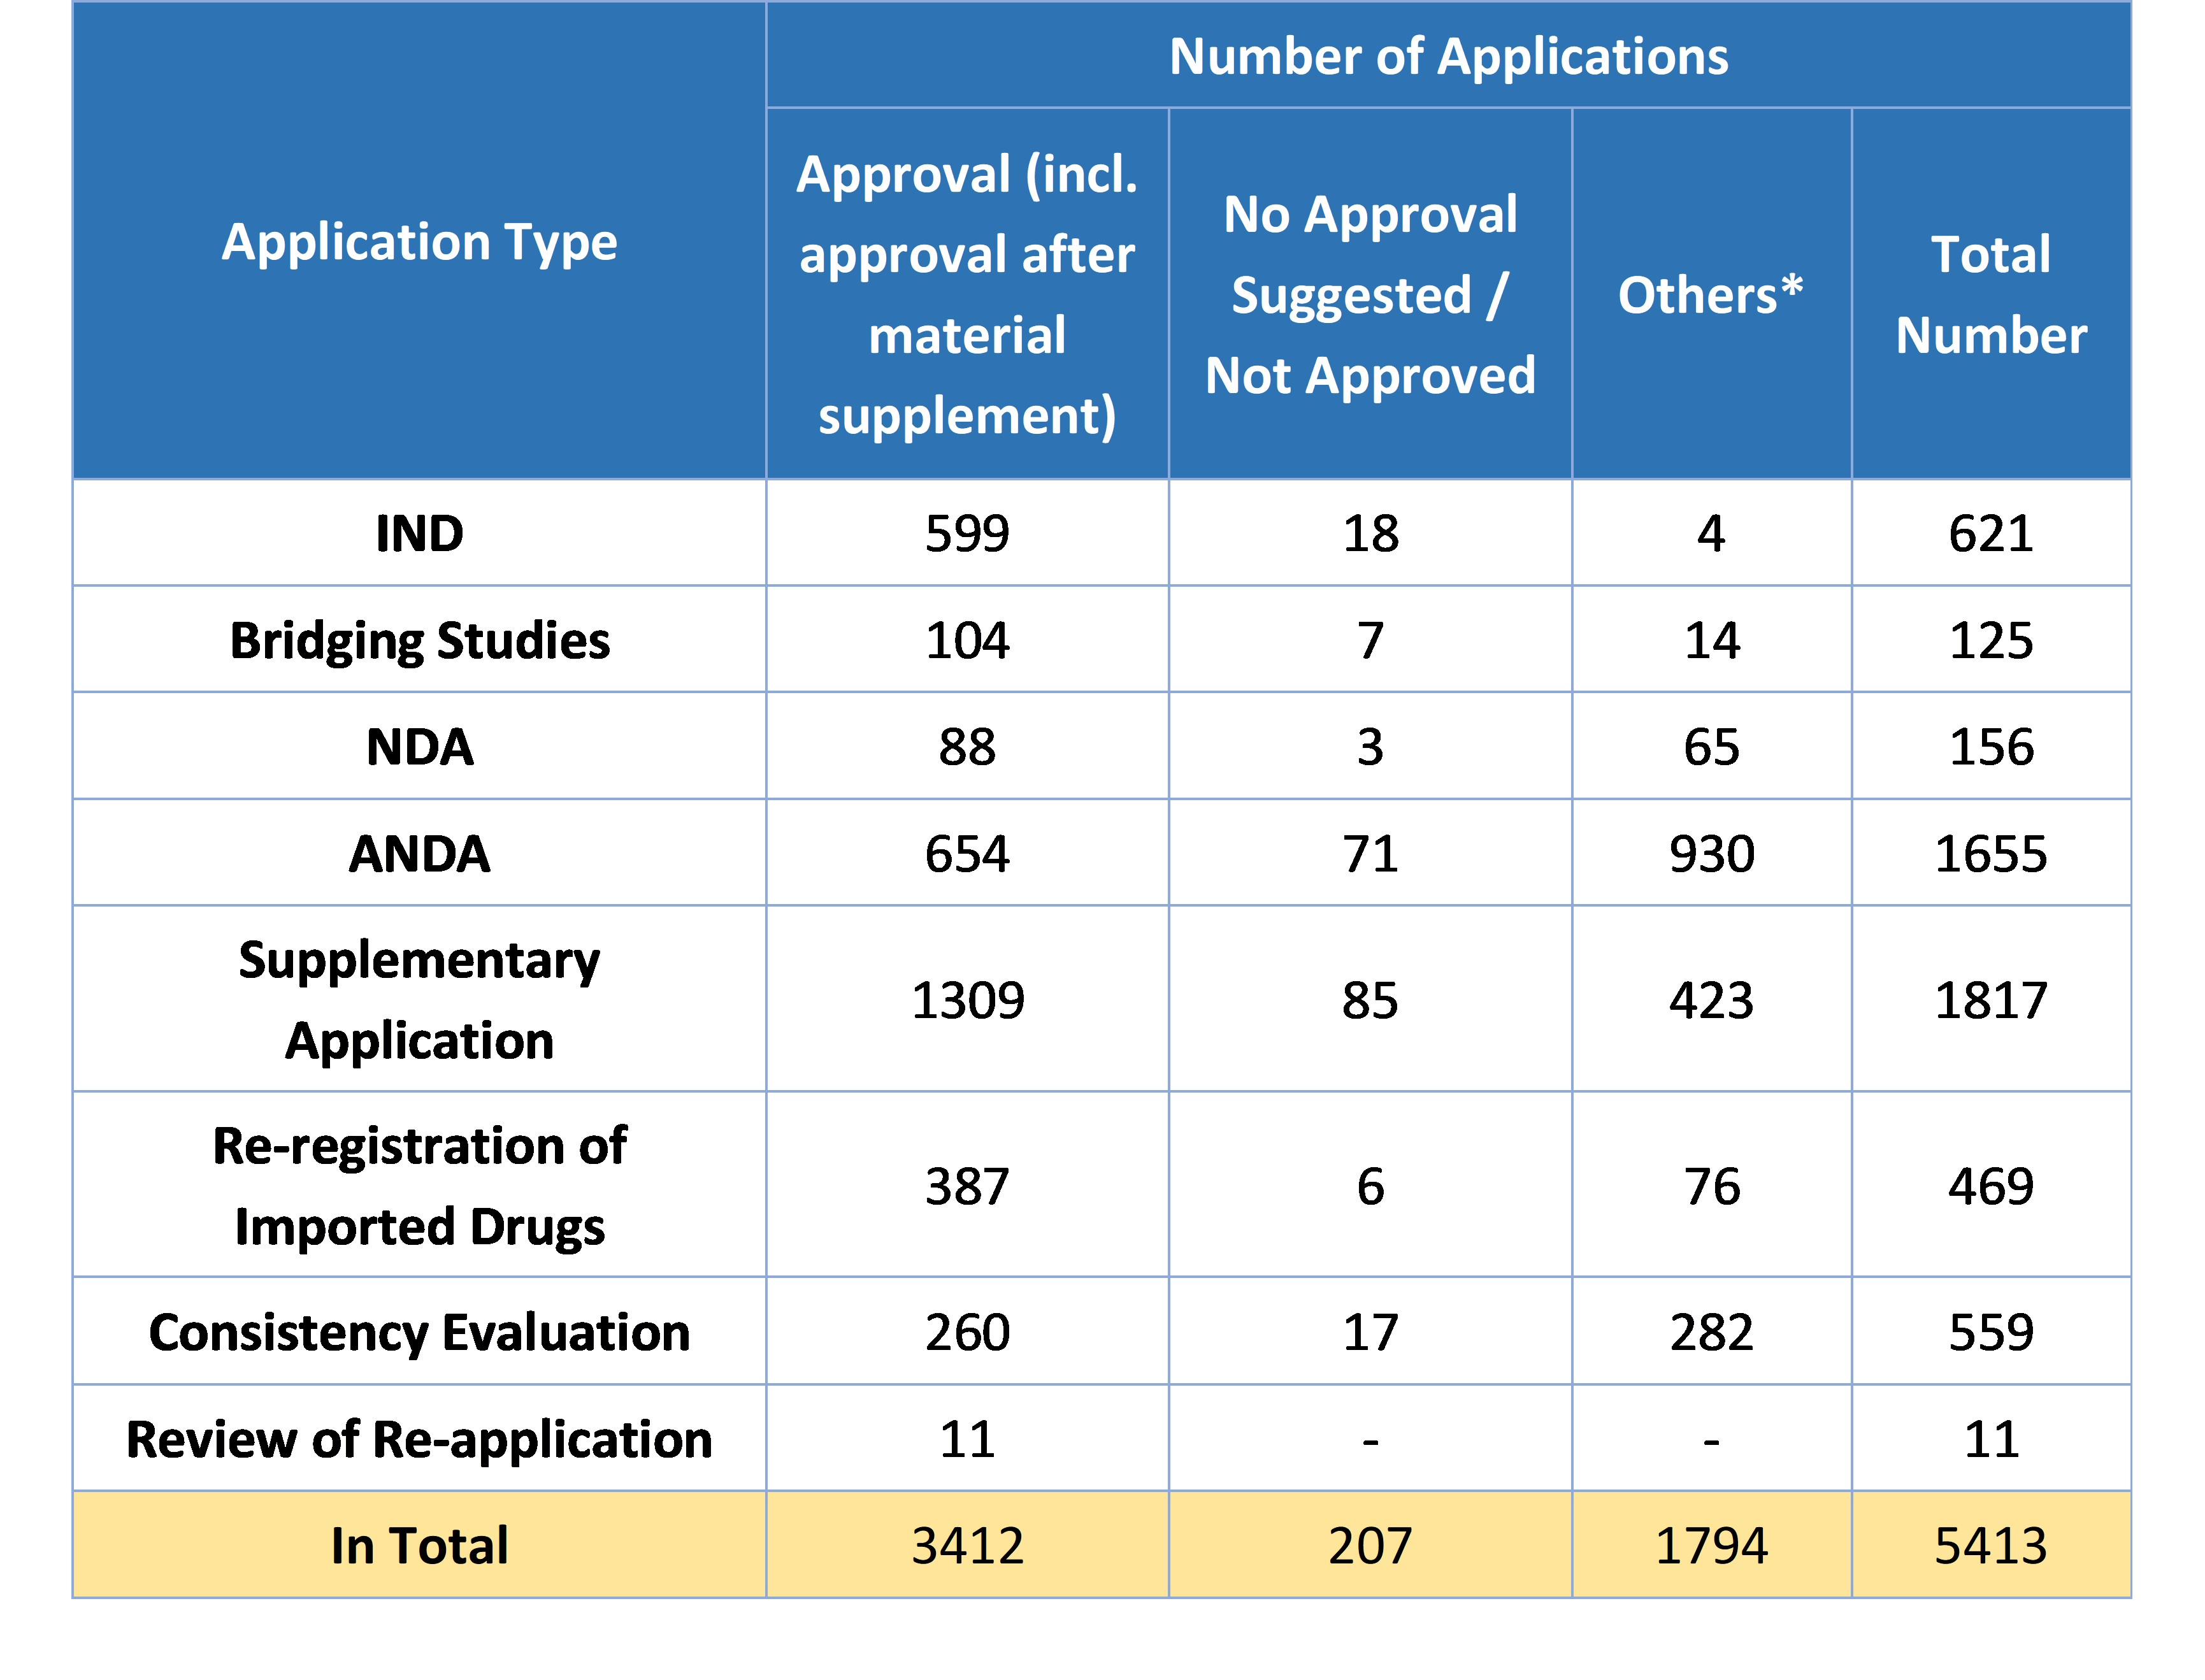 Table 5. Overview of Approvals for Chemical Drug Registrations in 2019